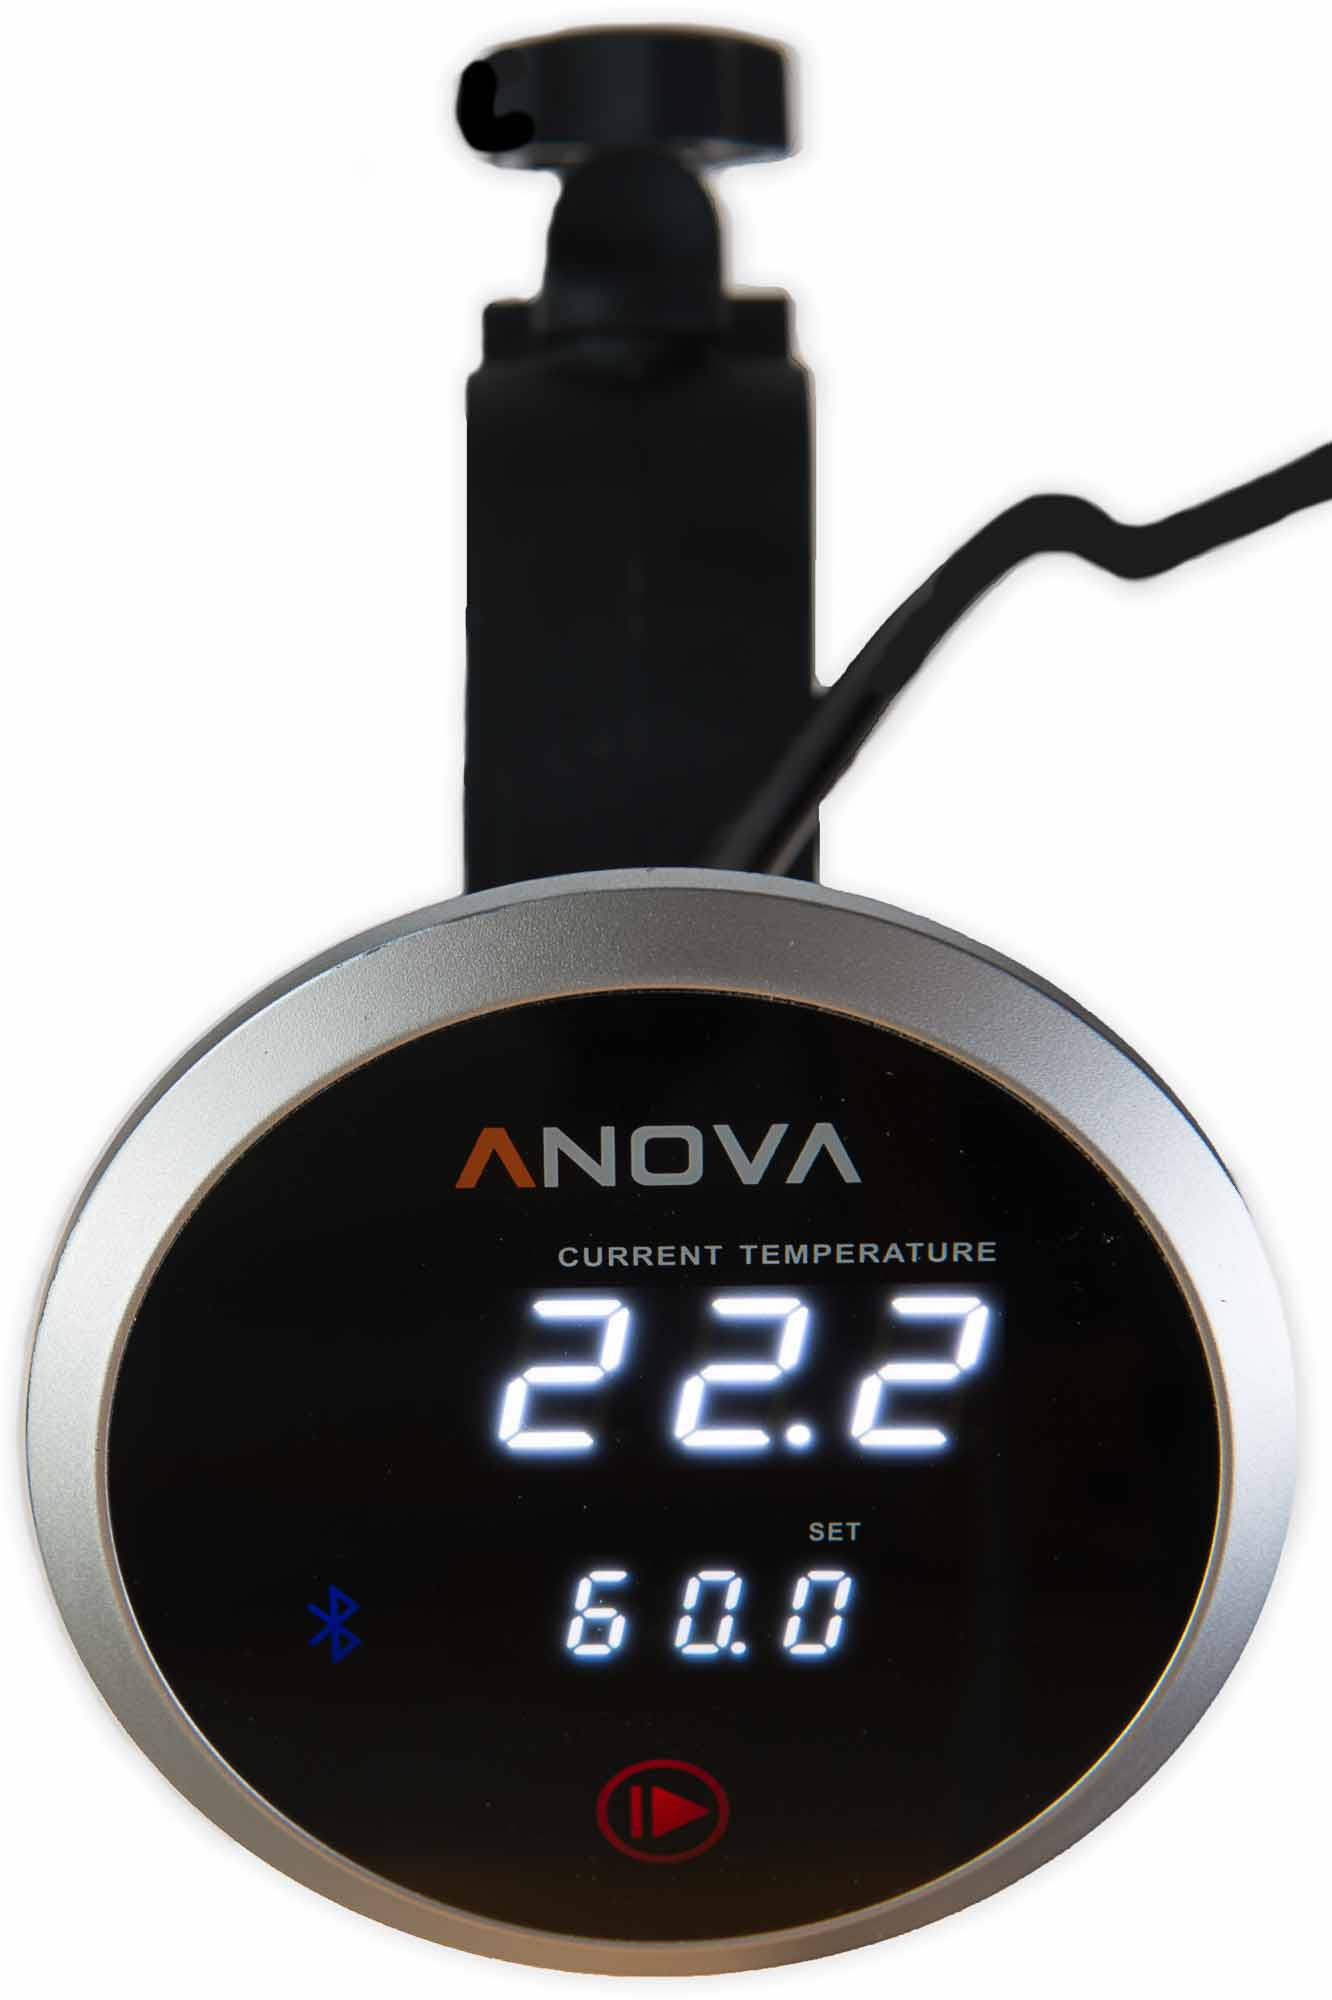 anova_bluetooth_05